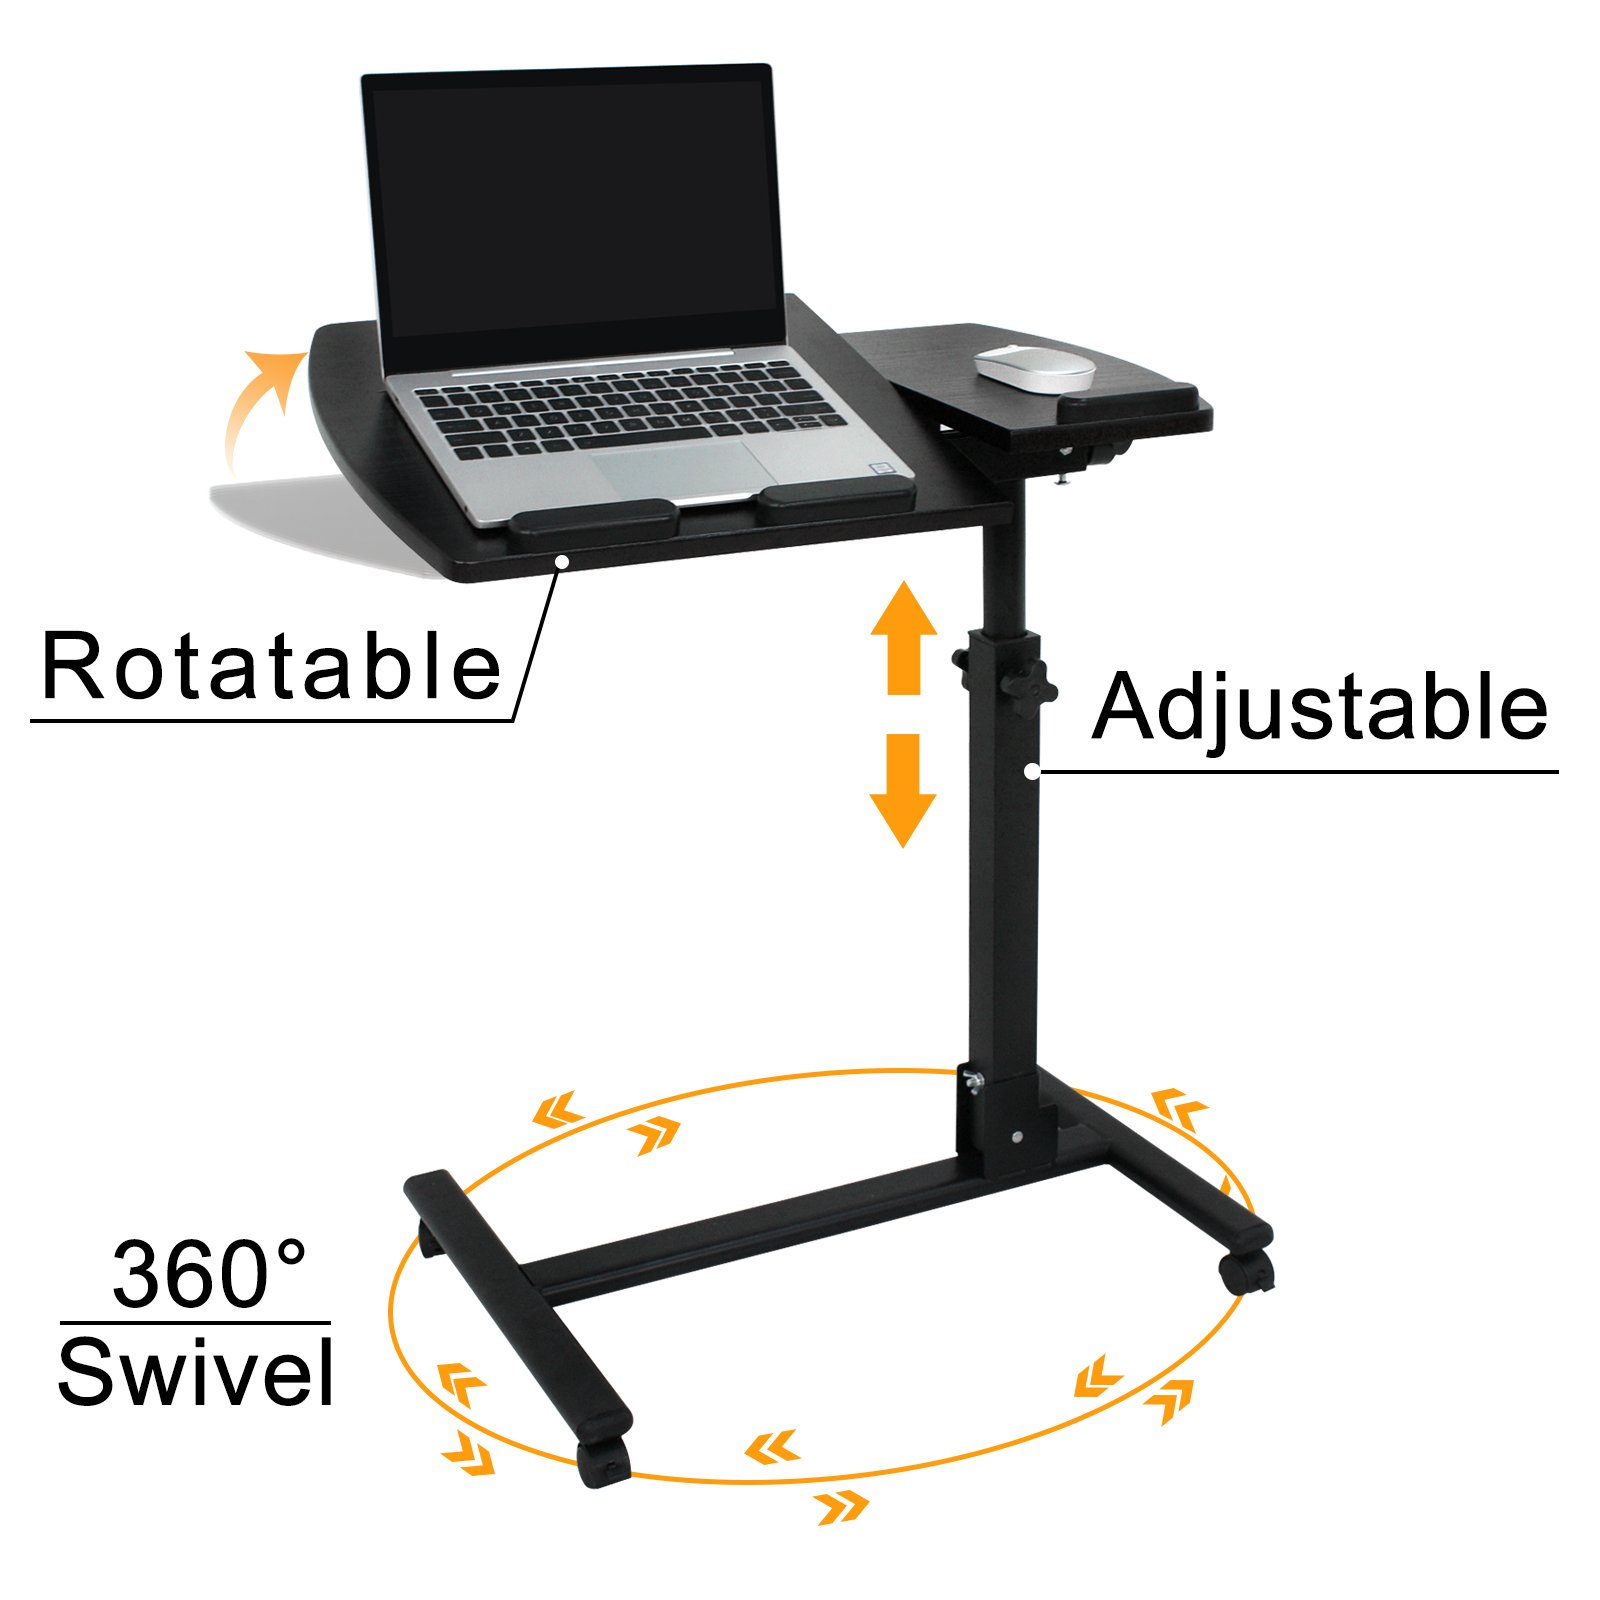 SUPER DEAL Angle & Height Adjustable Rolling Table Desk Laptop Notebook Stand Tiltable Tabletop Desk Sofa/Bed Side Table Hospital Table Stand W/Lockable Casters by SUPER DEAL